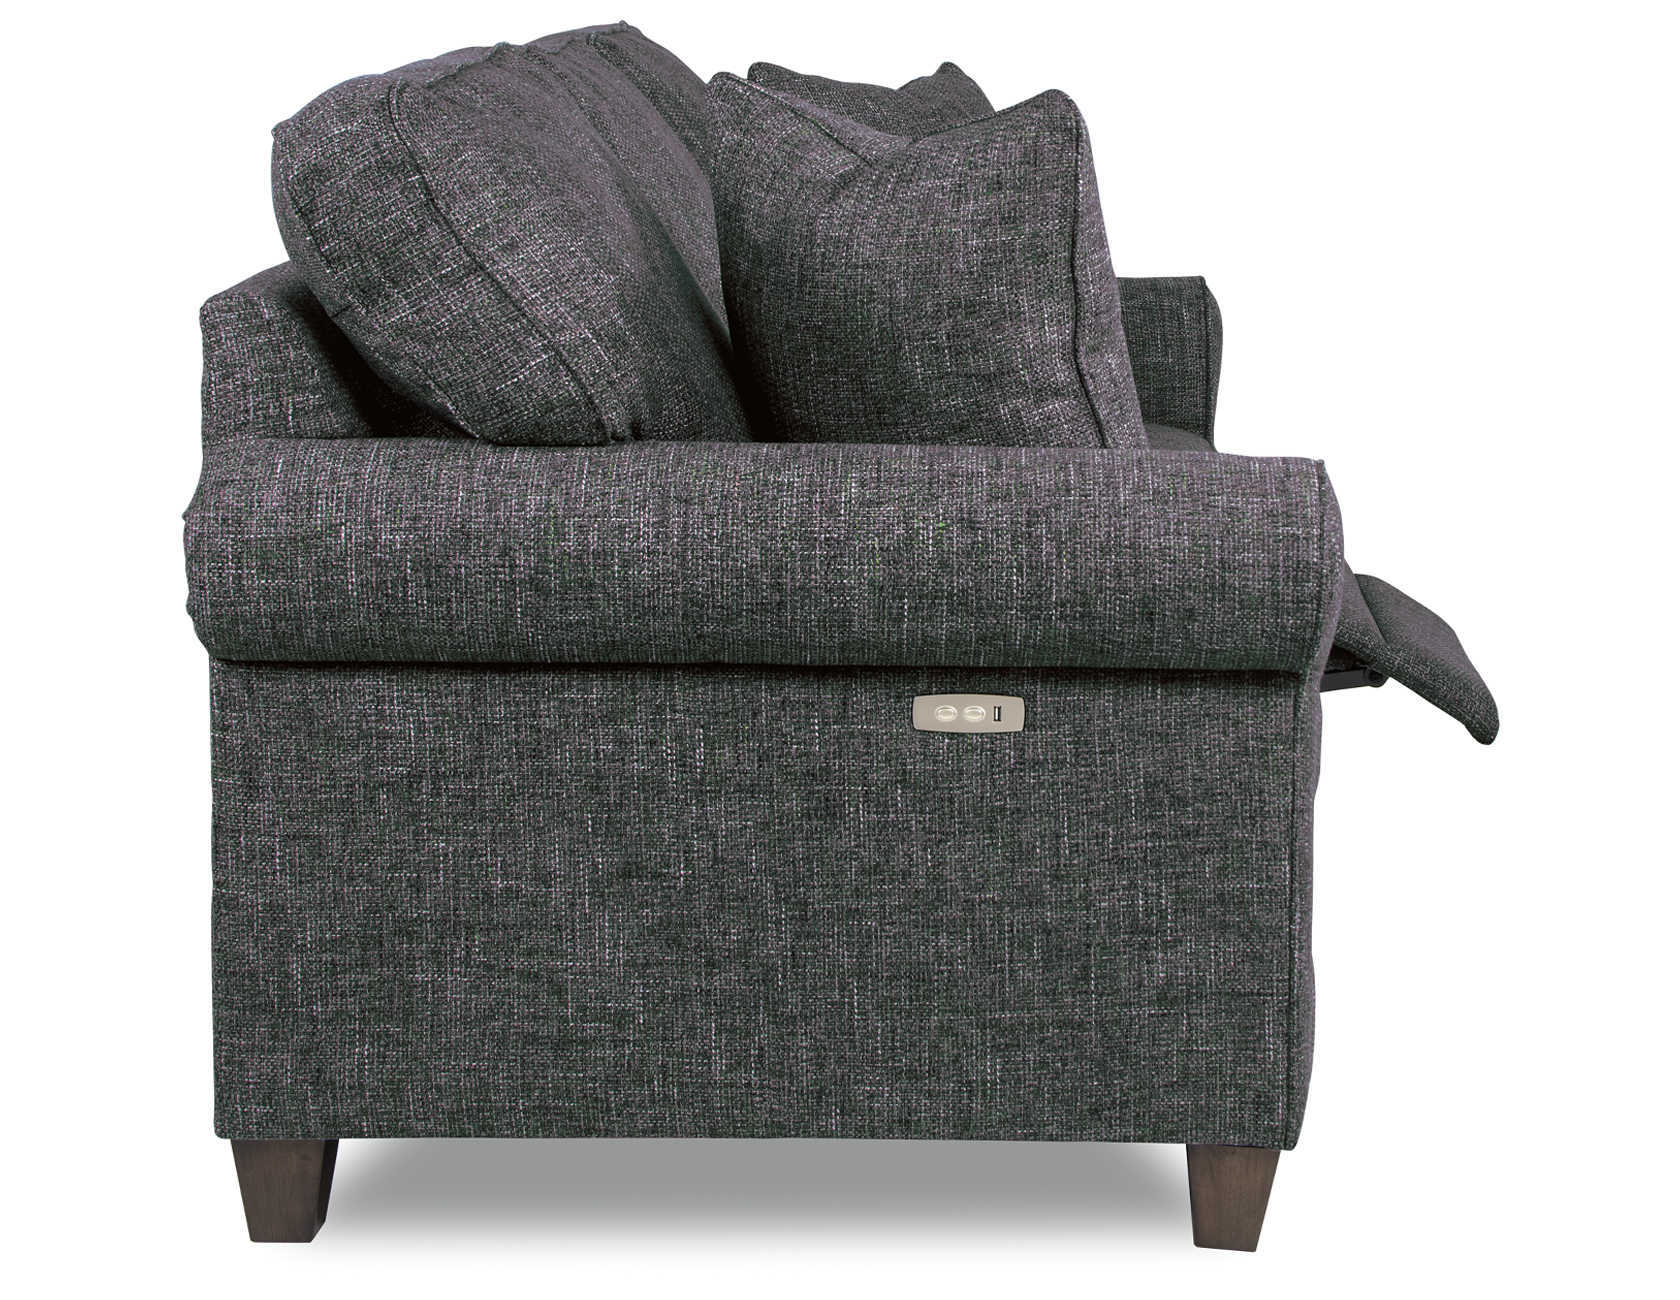 Luke duo® Reclining 2 Seat Sofa side view